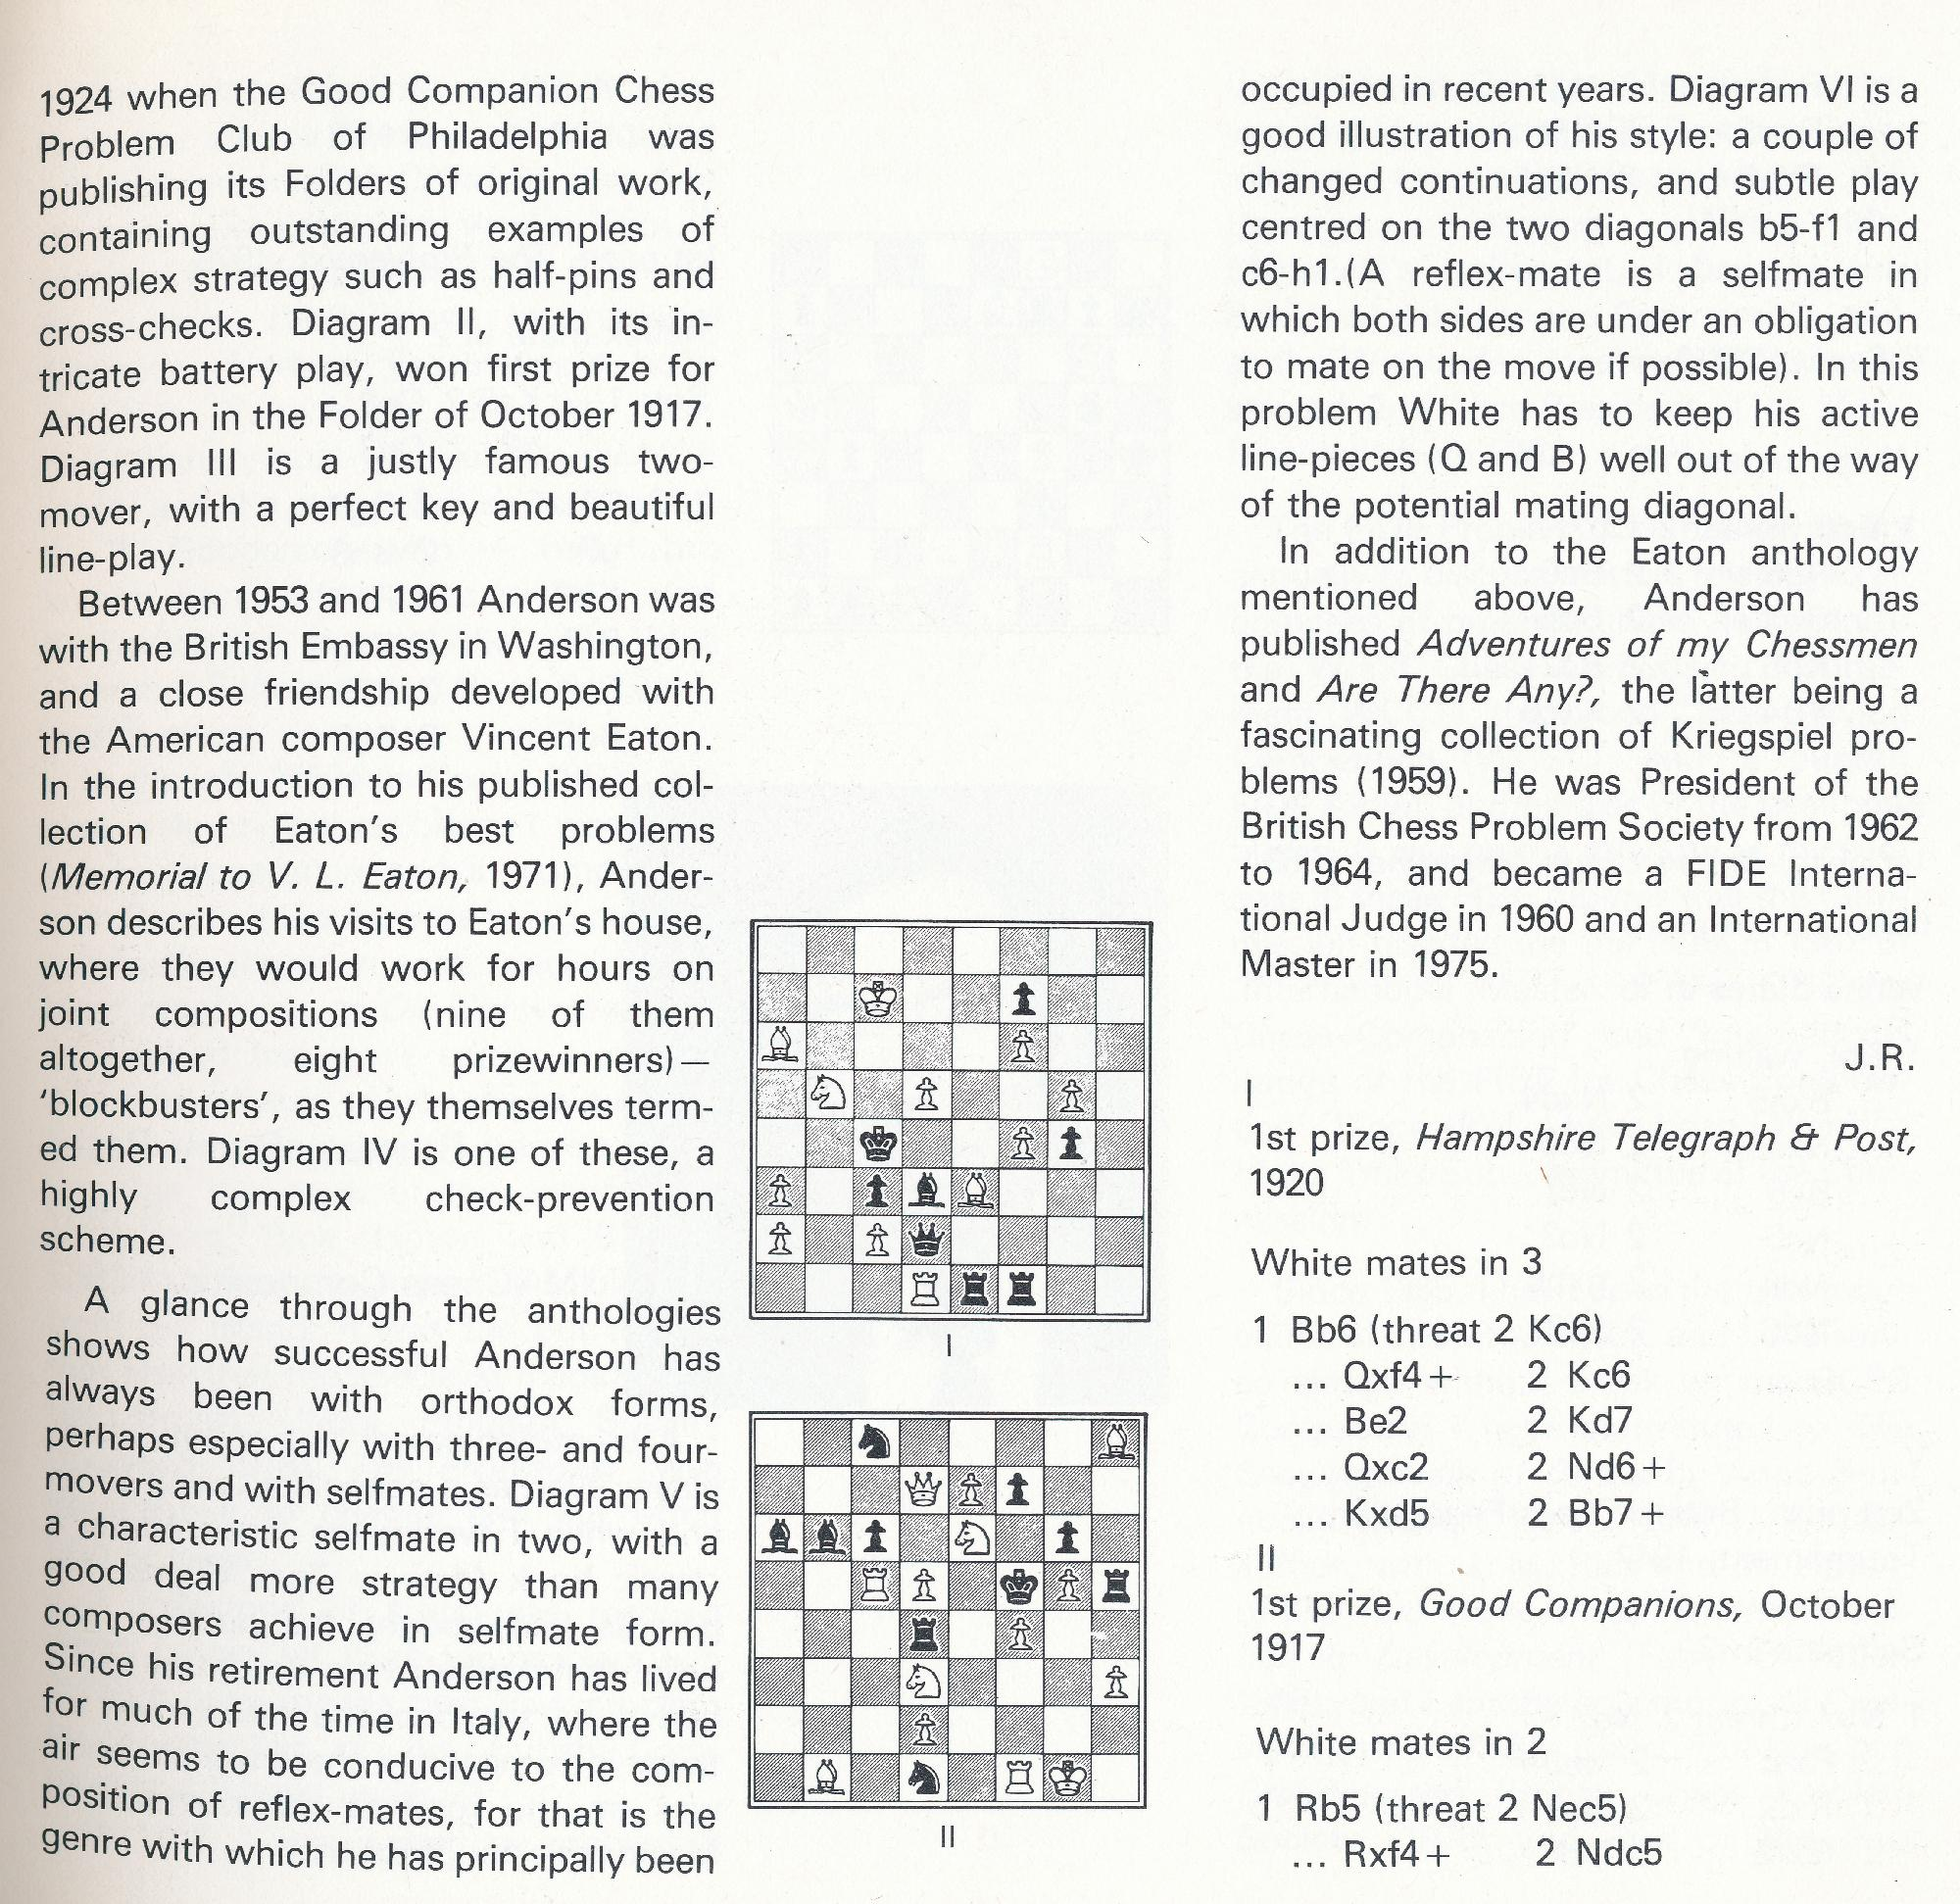 British Chess, Pergamon Press, 1983. page 17